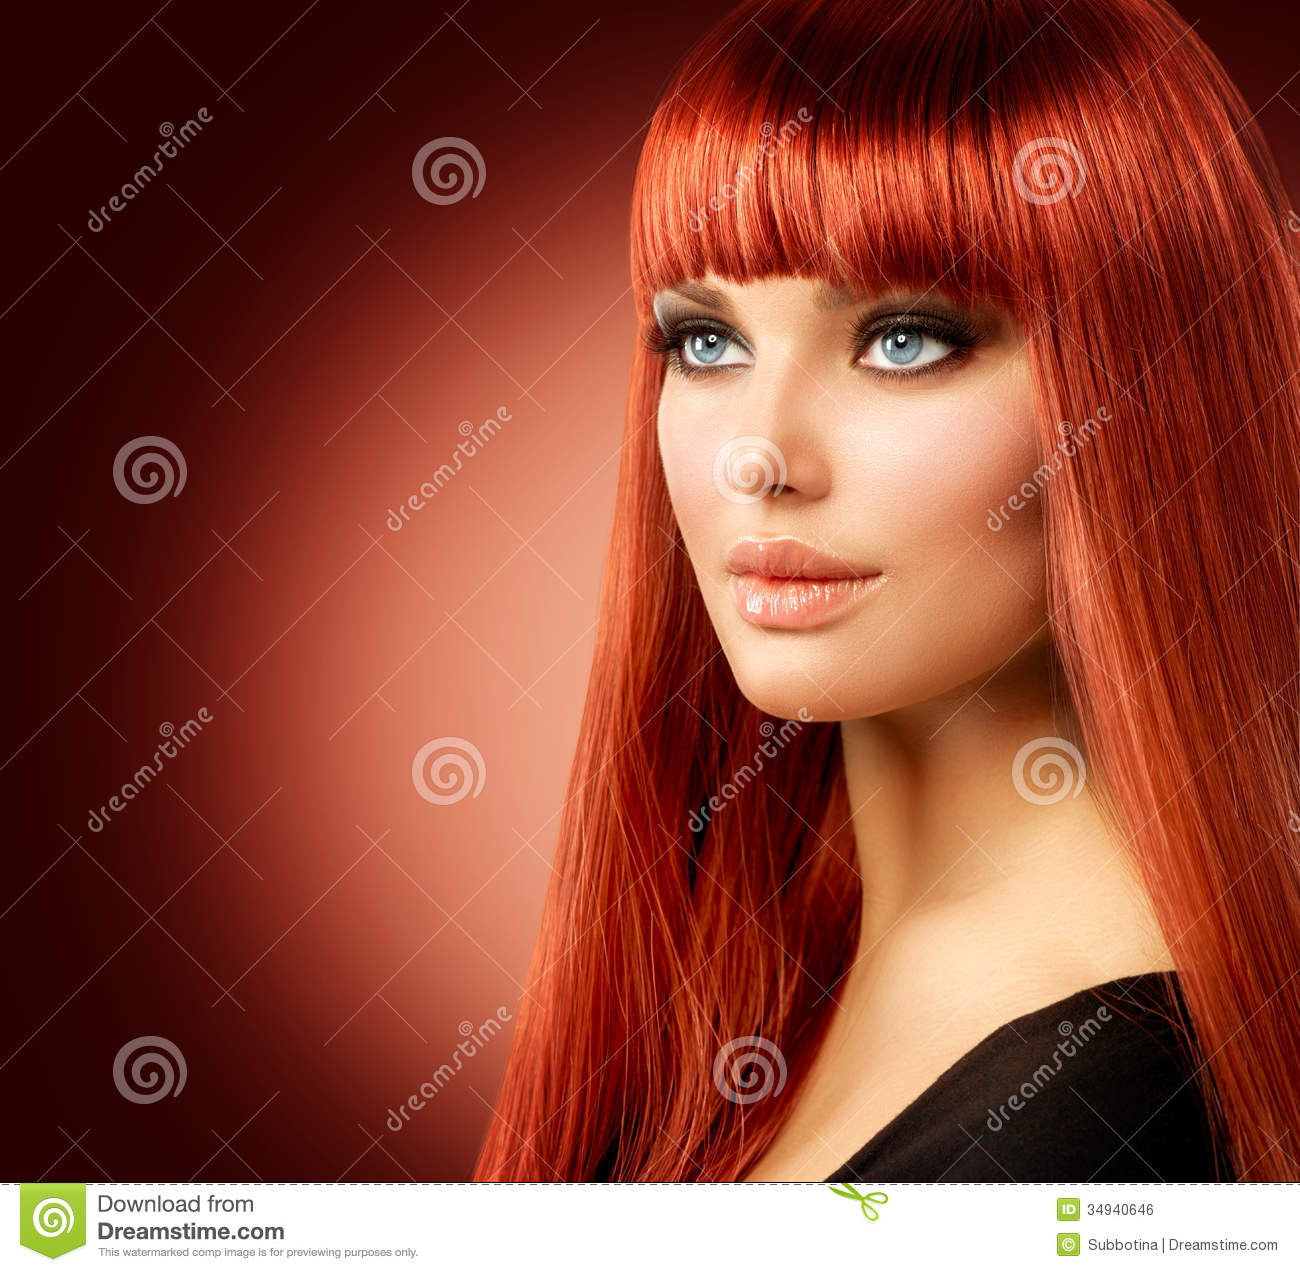 Woman With Long Red Hair Royalty Free Stock Image - Image: 34940646